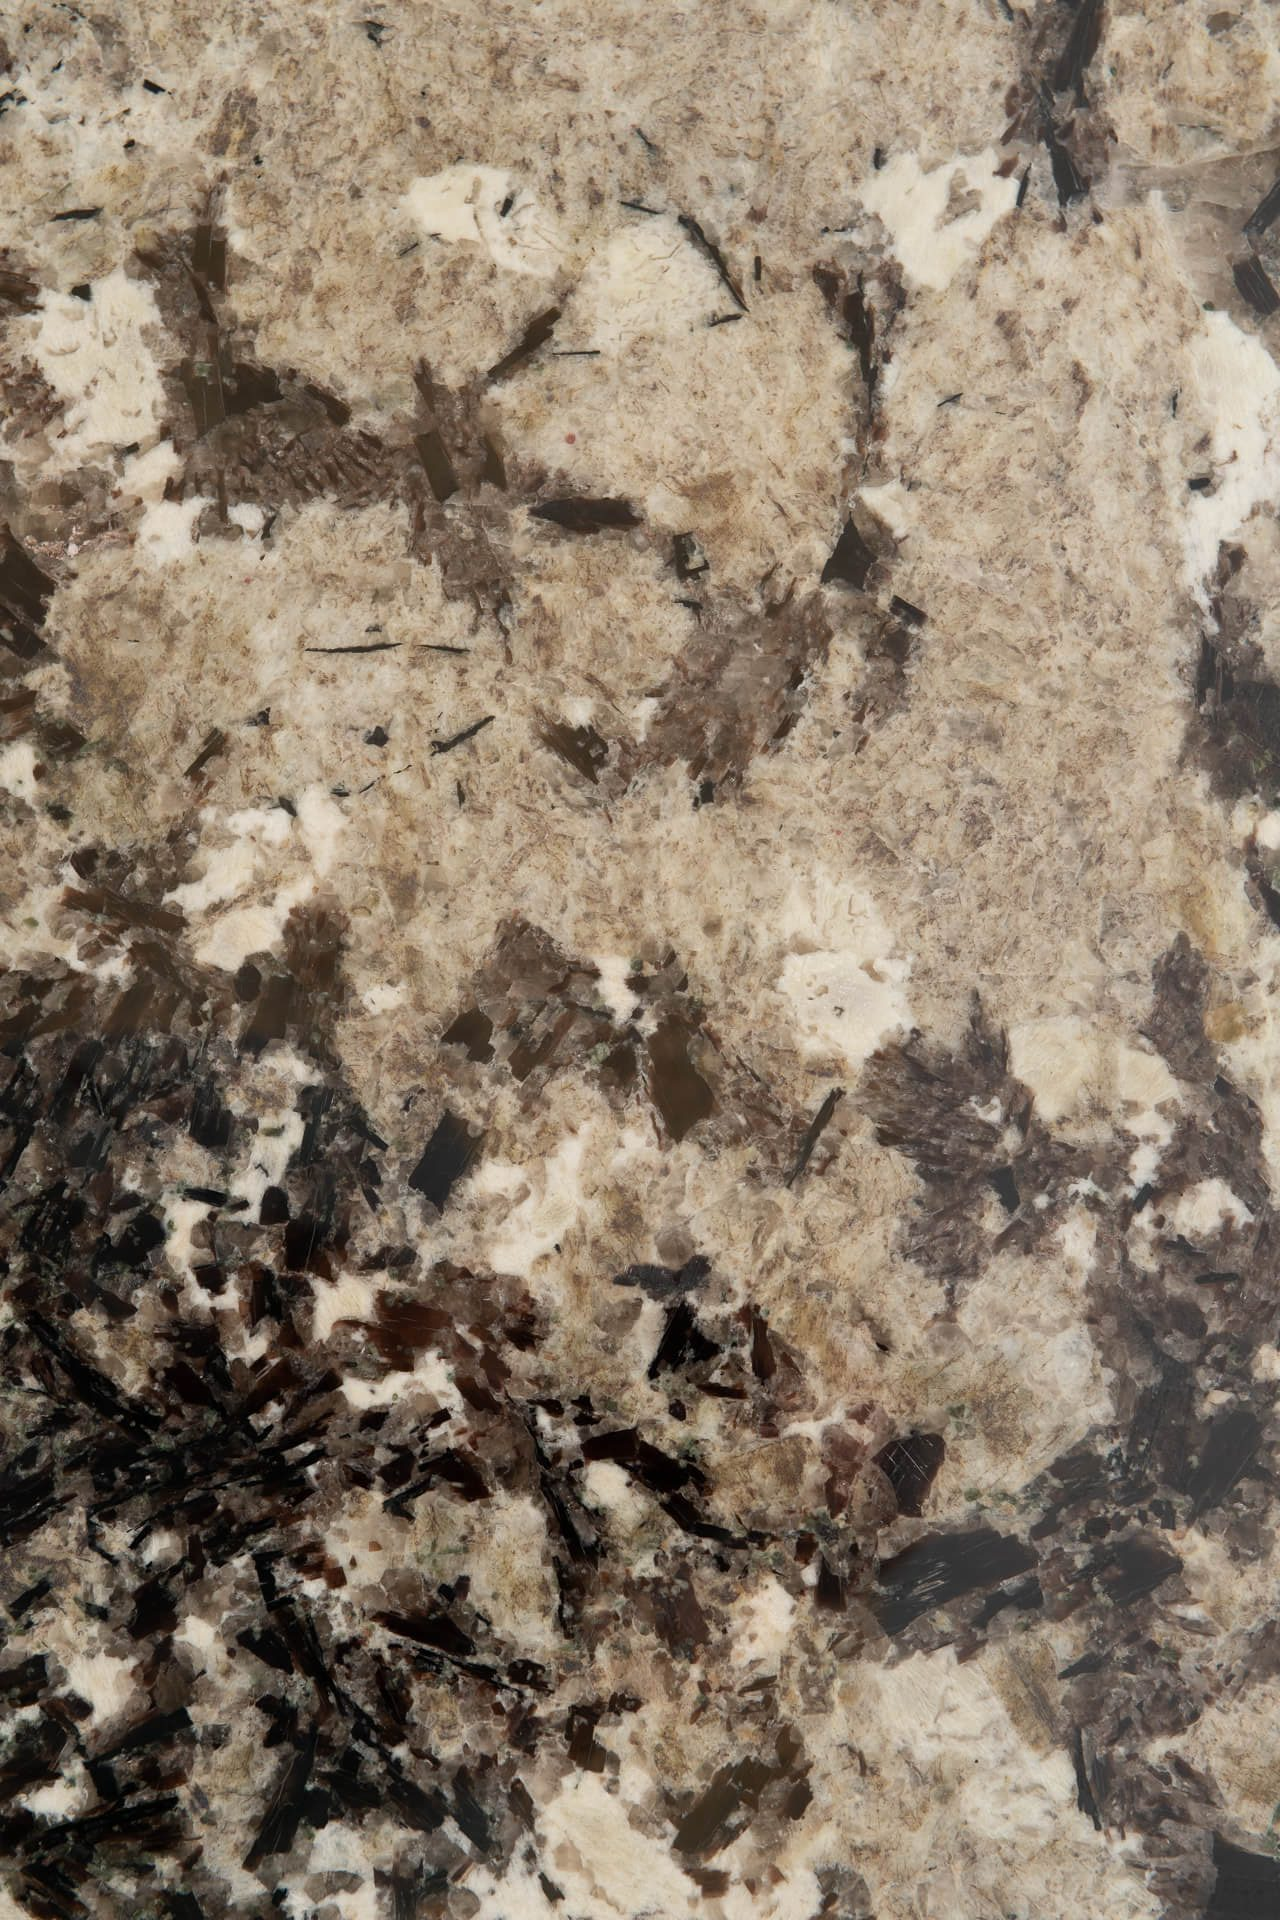 everest cu countertop - by Magnolia Countertops. A Countertop fabricator of Granite Countertops, Marble Countertops, and Quartz Countertops in Cookeville and Crossville TN.